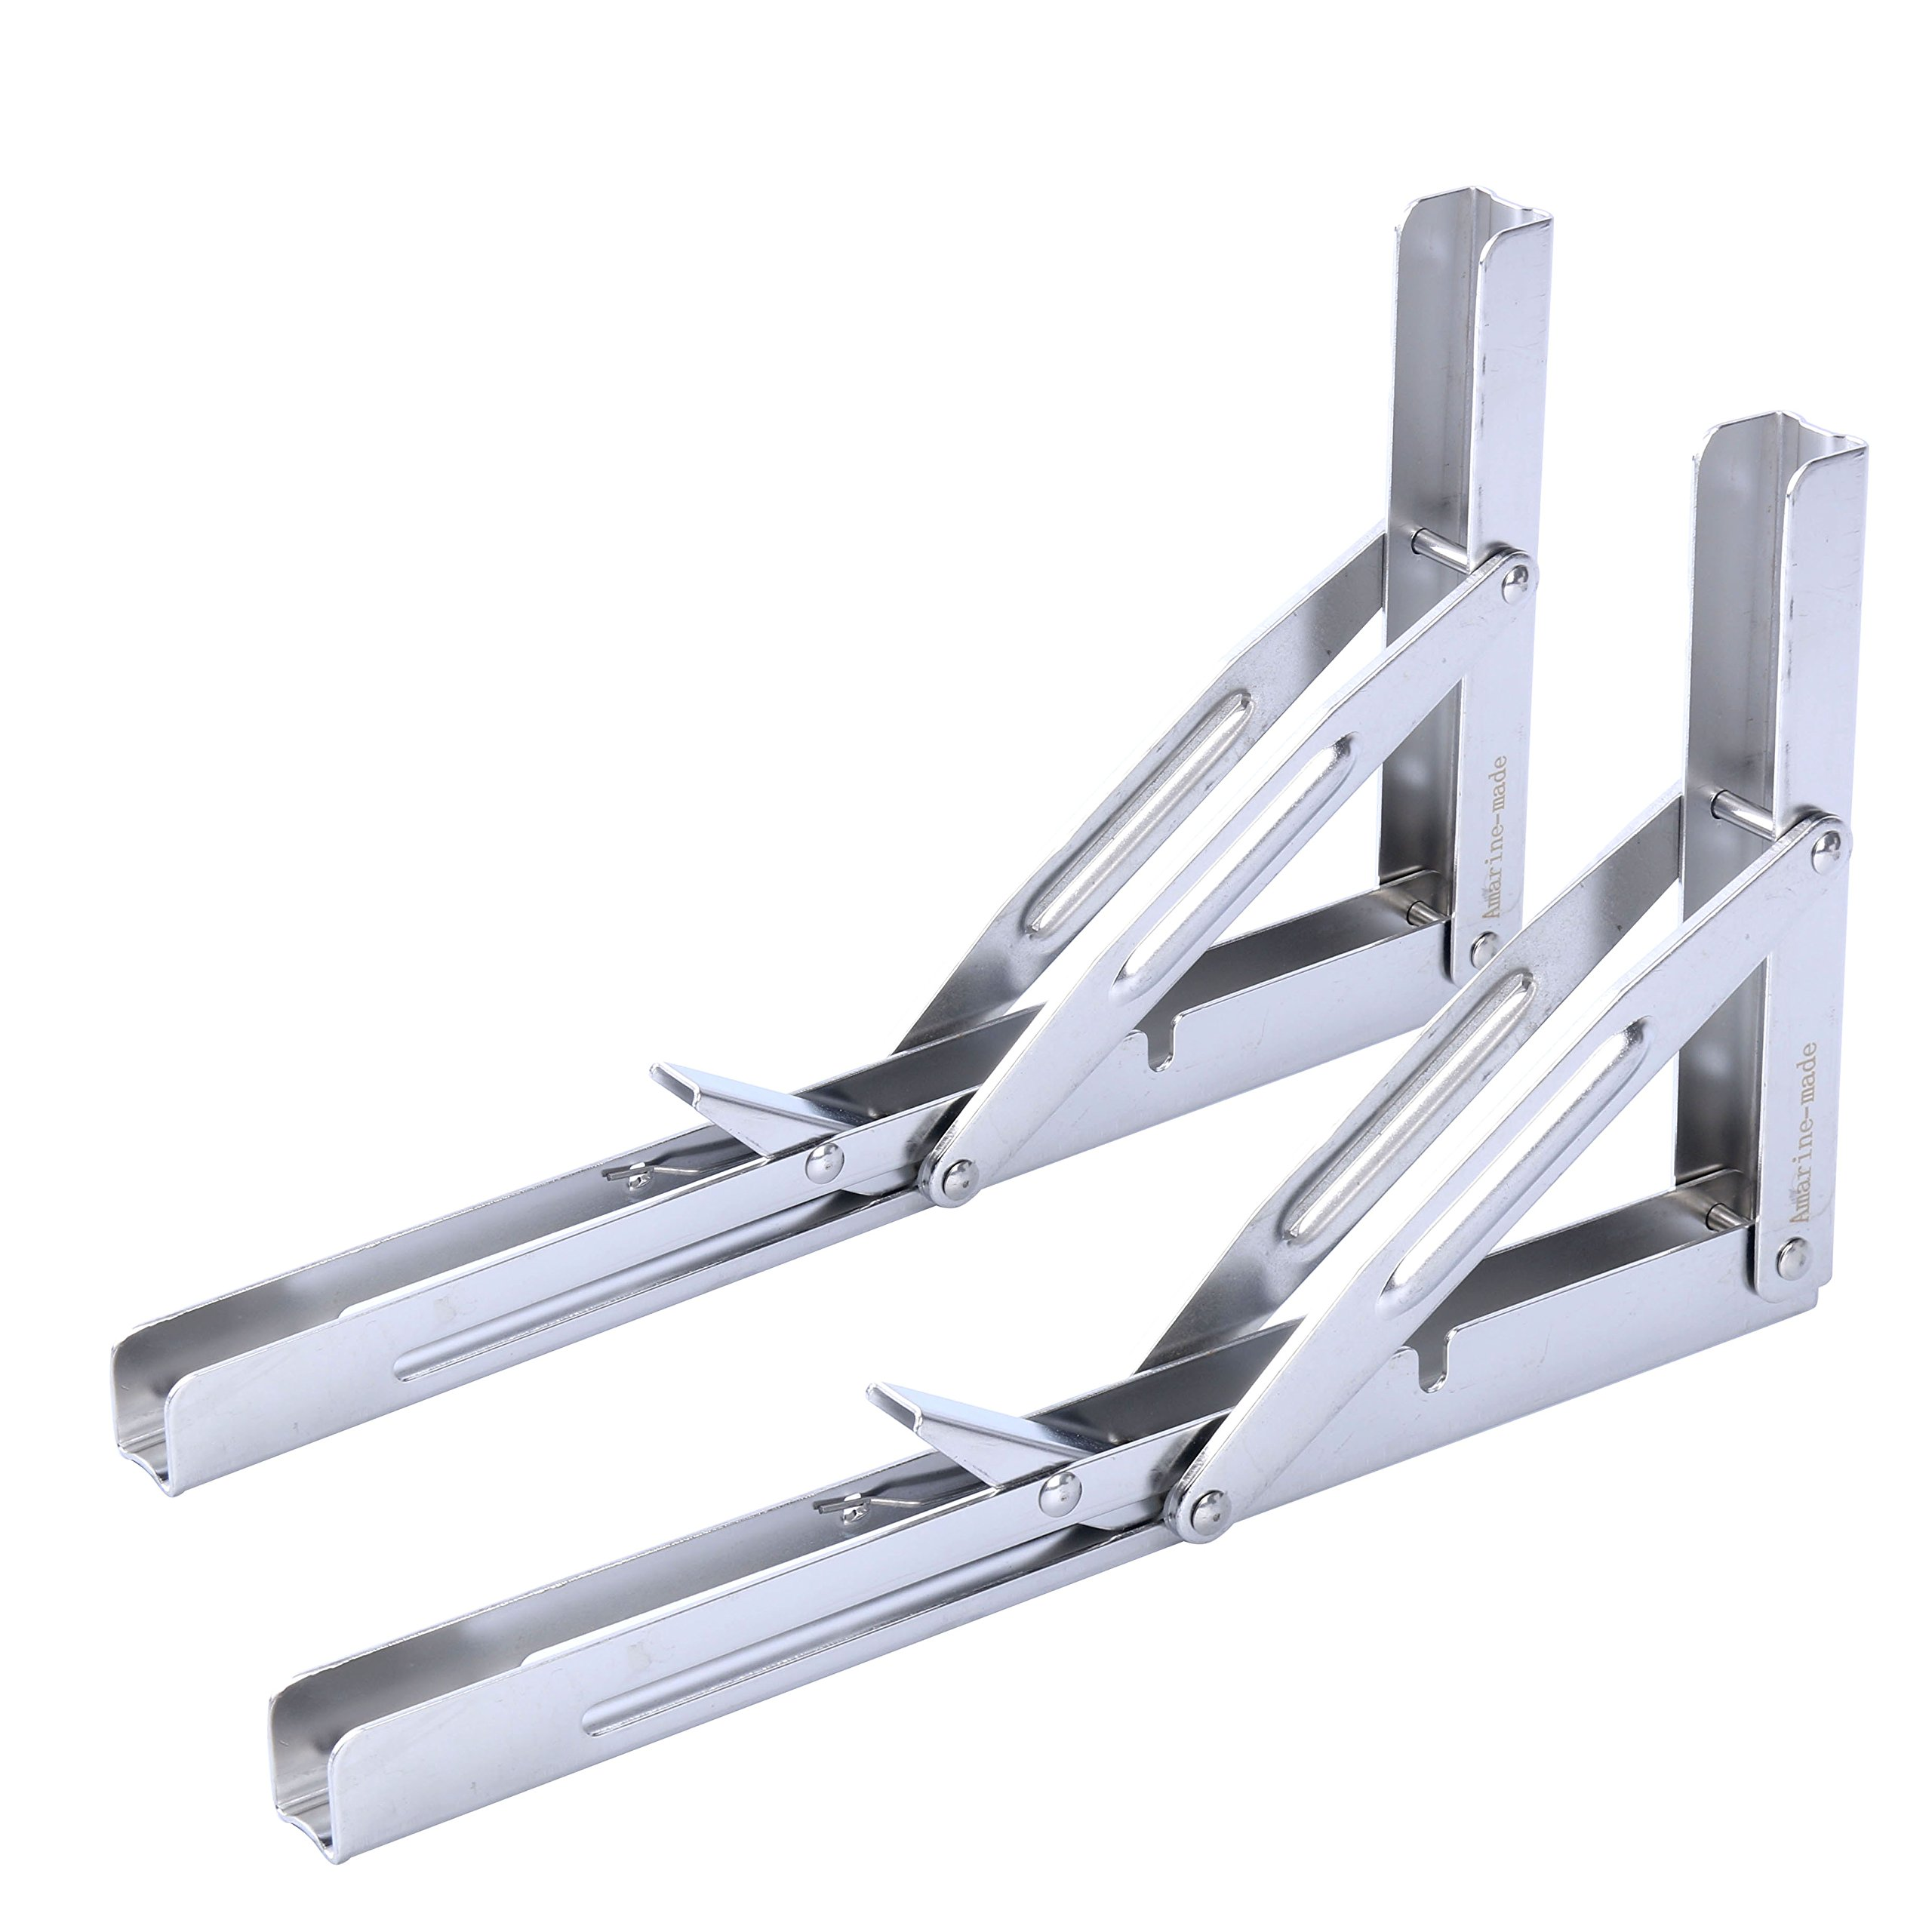 Amarine-made 2 PCS Heavy Duty Polished Stainless Steel Folding Shelf Bench Table Folding Shelf or Bracket, Max Load: 550lb/250kg, Short Release Arm